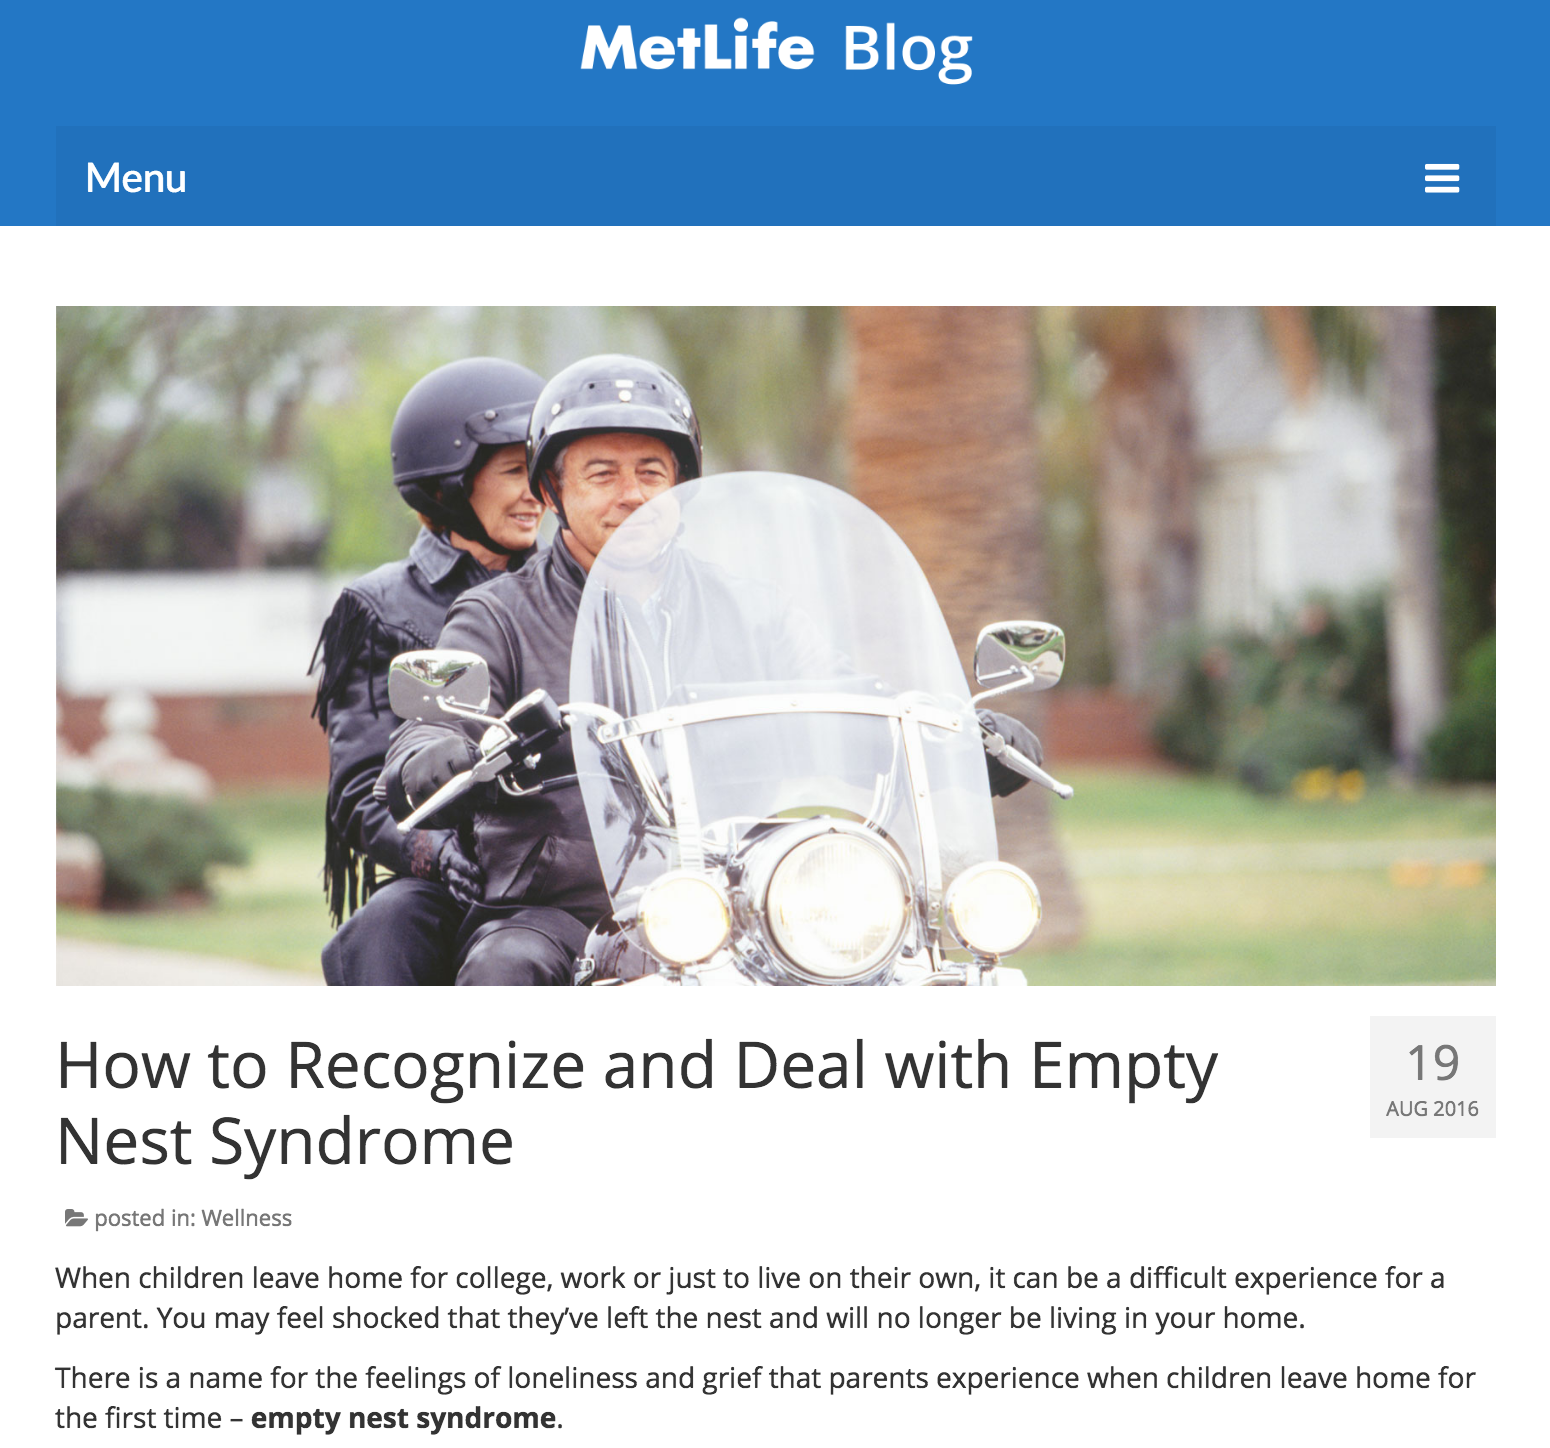 How to Recognize and Deal with Empty Nest Syndrome